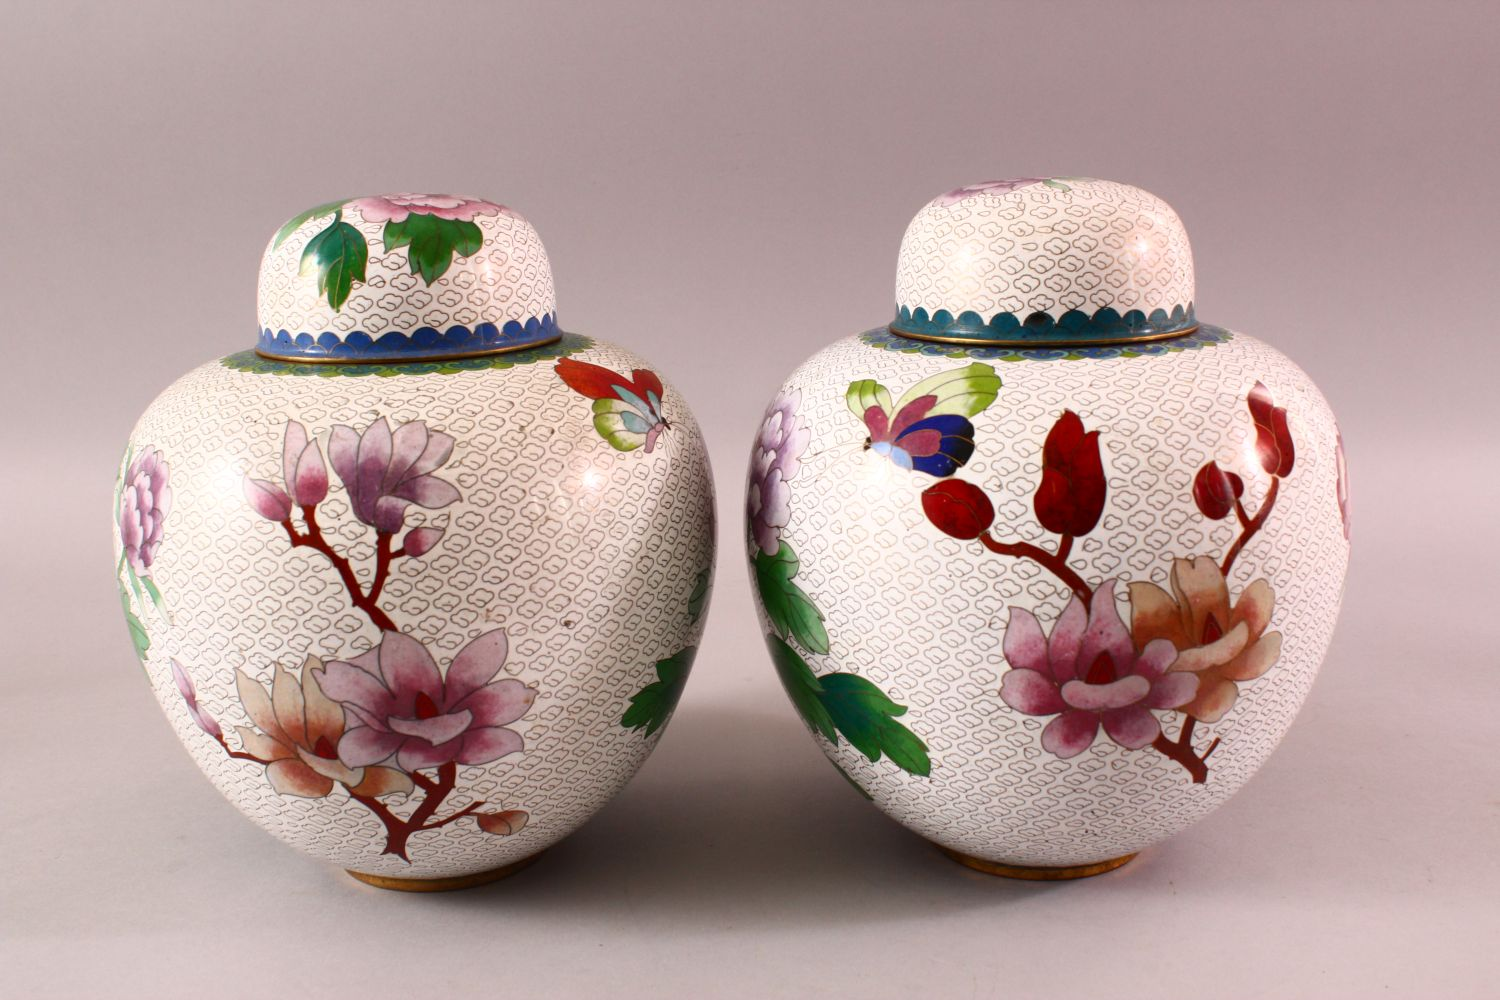 A PAIR OF CHINESE CLOISONNE GINGER JARS & COVERS, each with a white ground and floral decoration, - Image 3 of 7